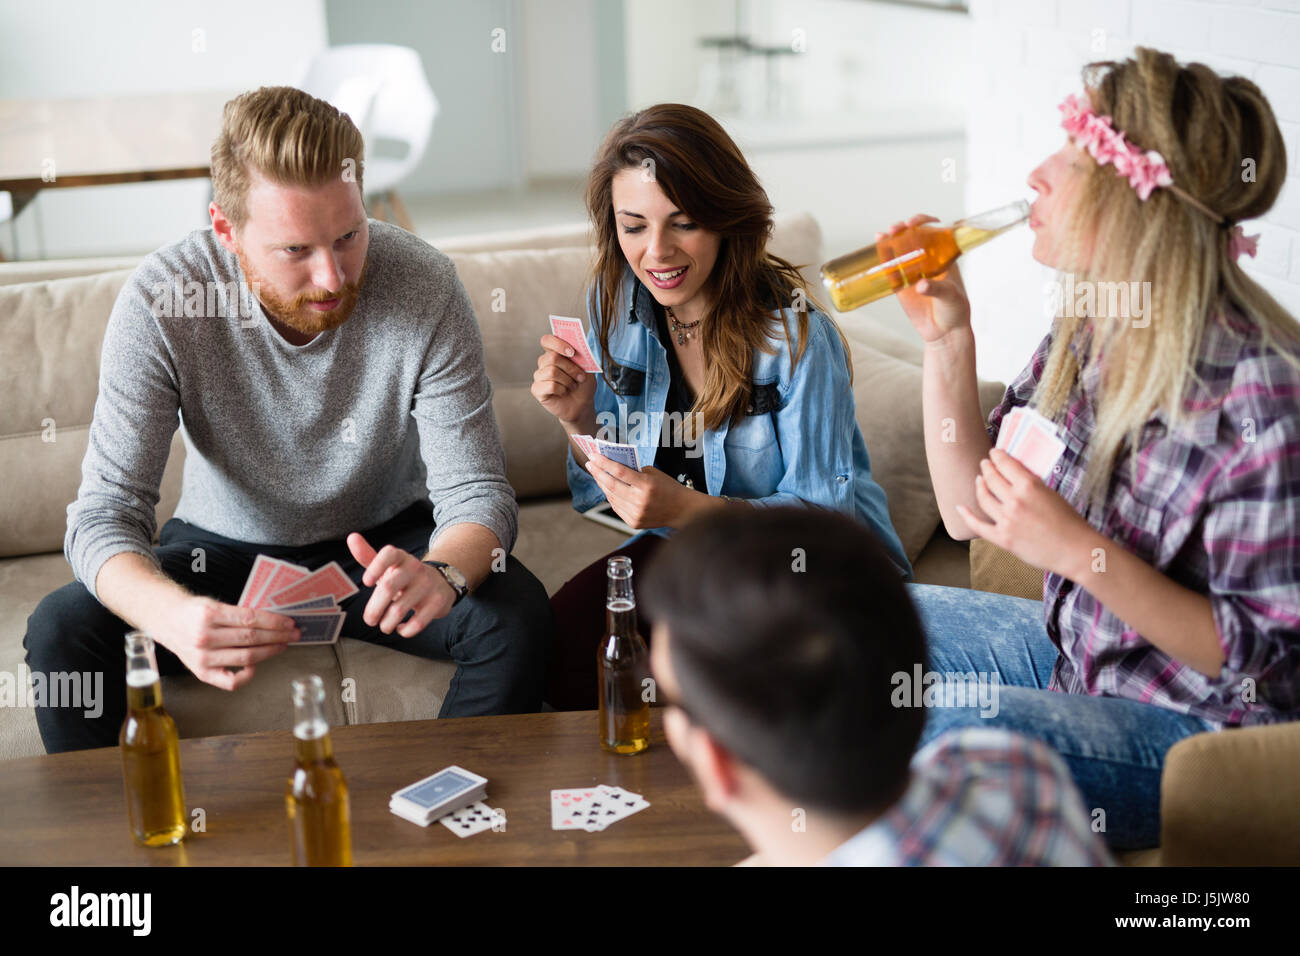 Friends having fun and smiling together indoors - Stock Image